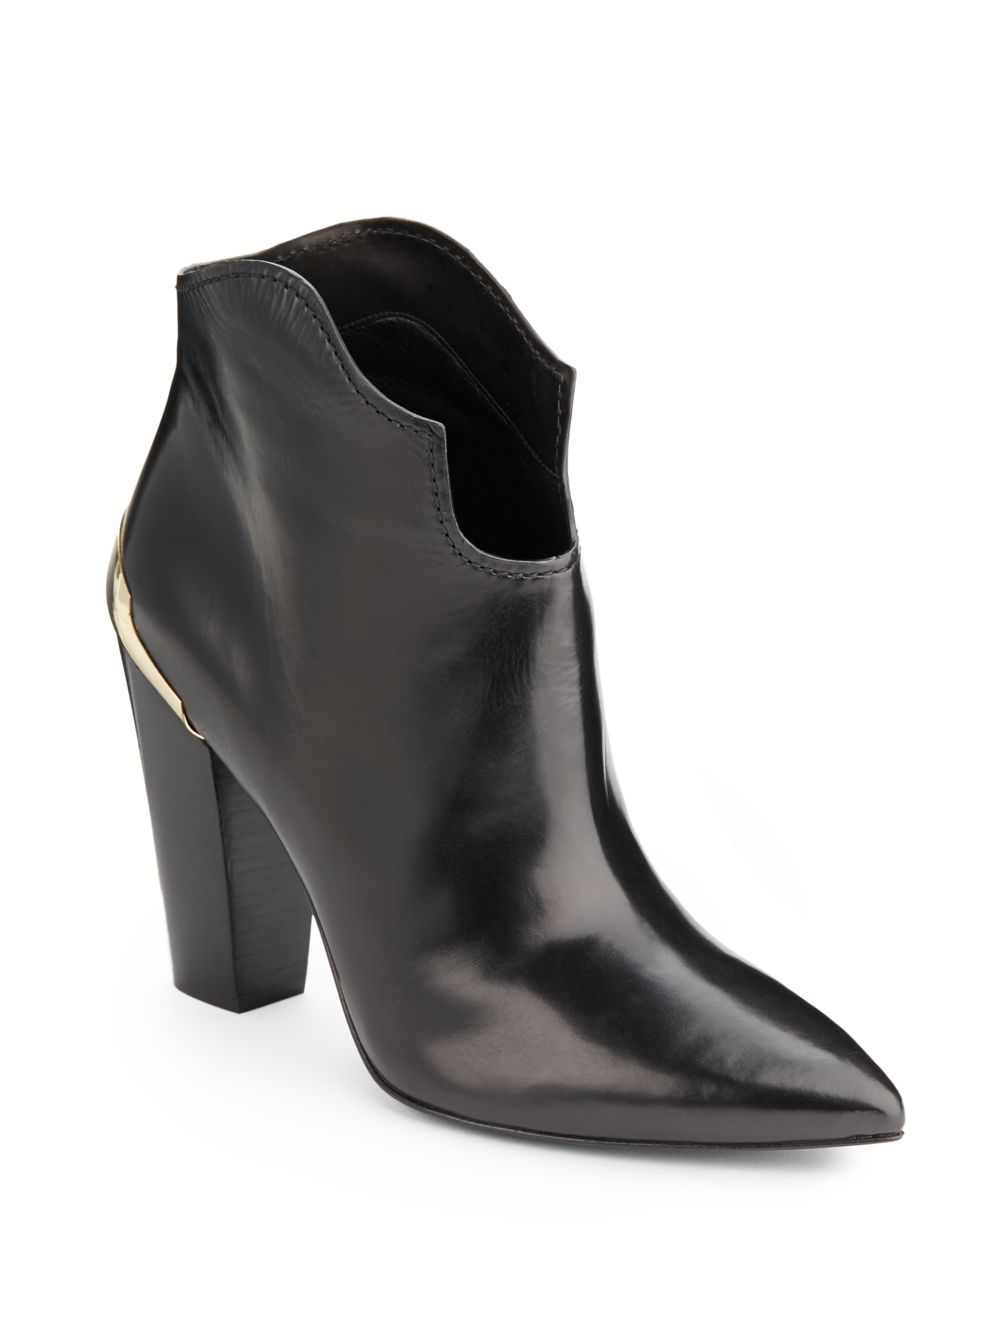 edc41607cae0 Sigerson Morrison Vesta Lacquer trimmed Leather Ankle Boots in Black ...